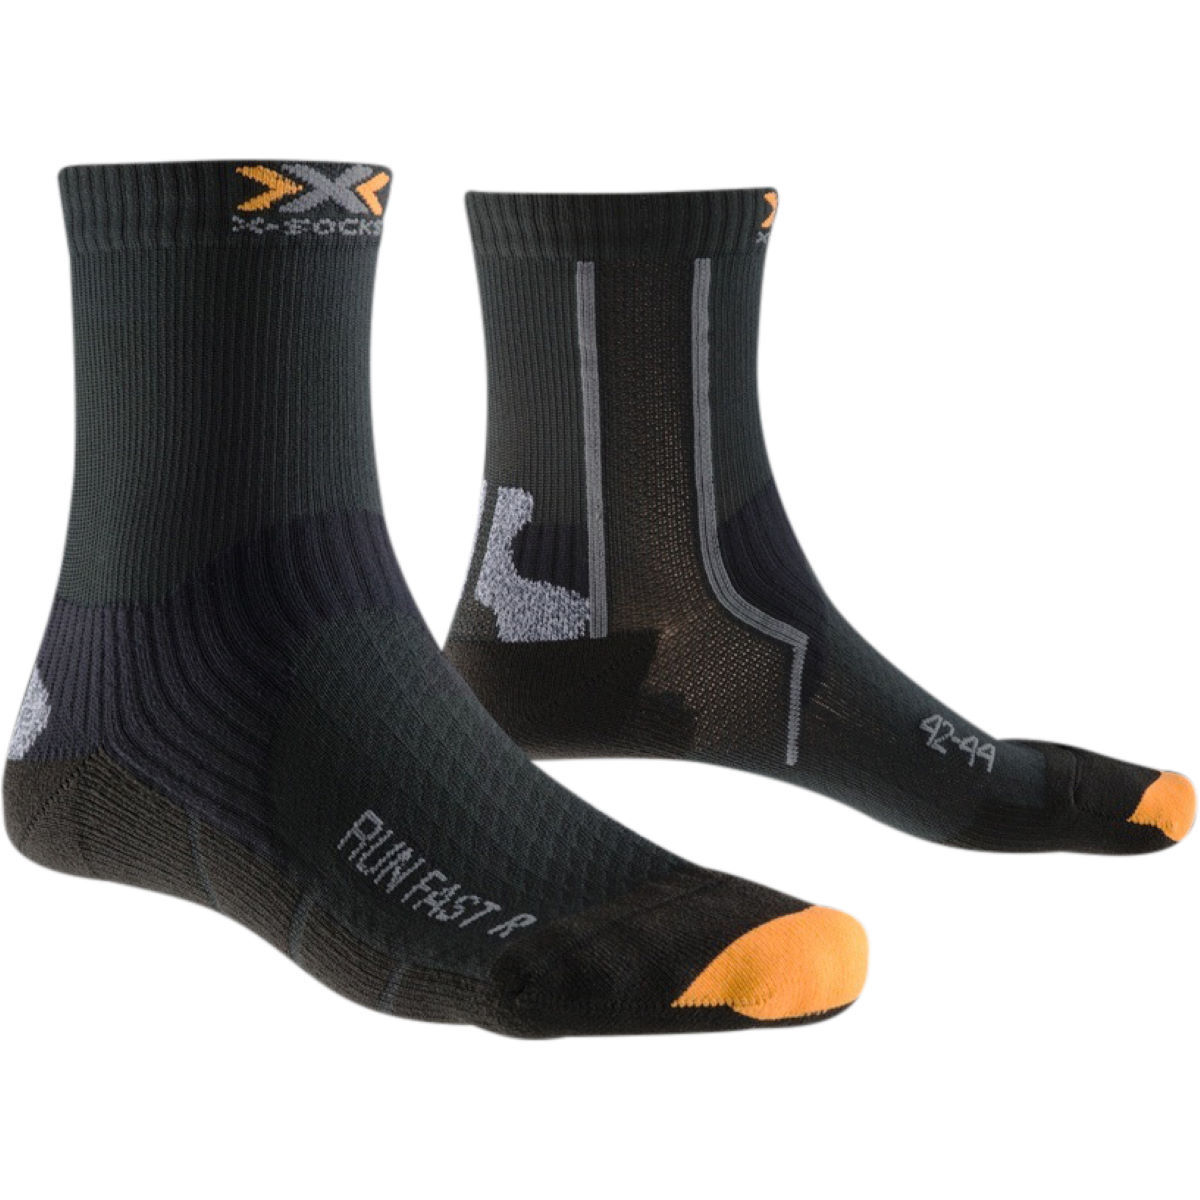 Calcetines X-Socks Run Fast - Calcetines